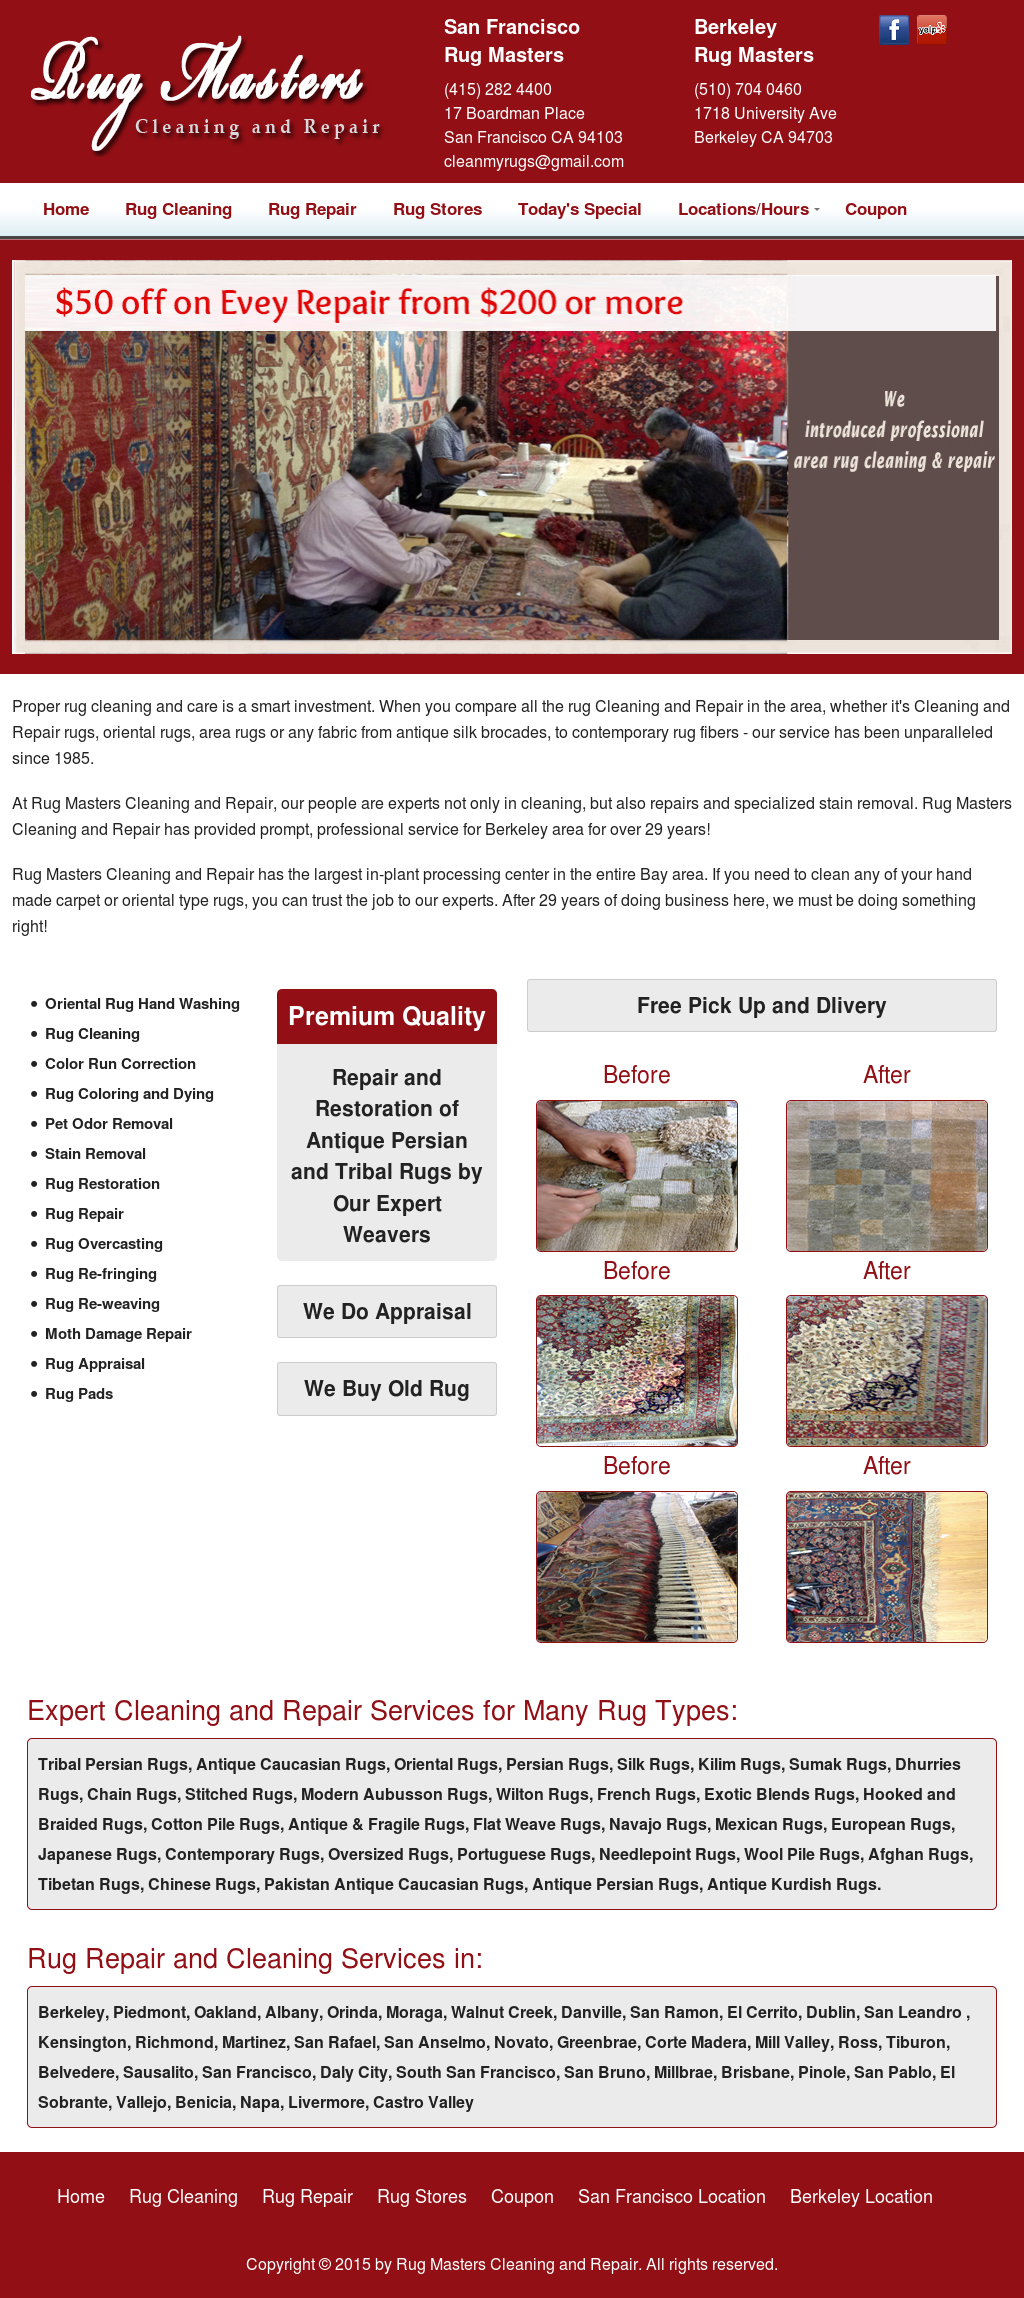 Rug Masters Cleaning & Repair